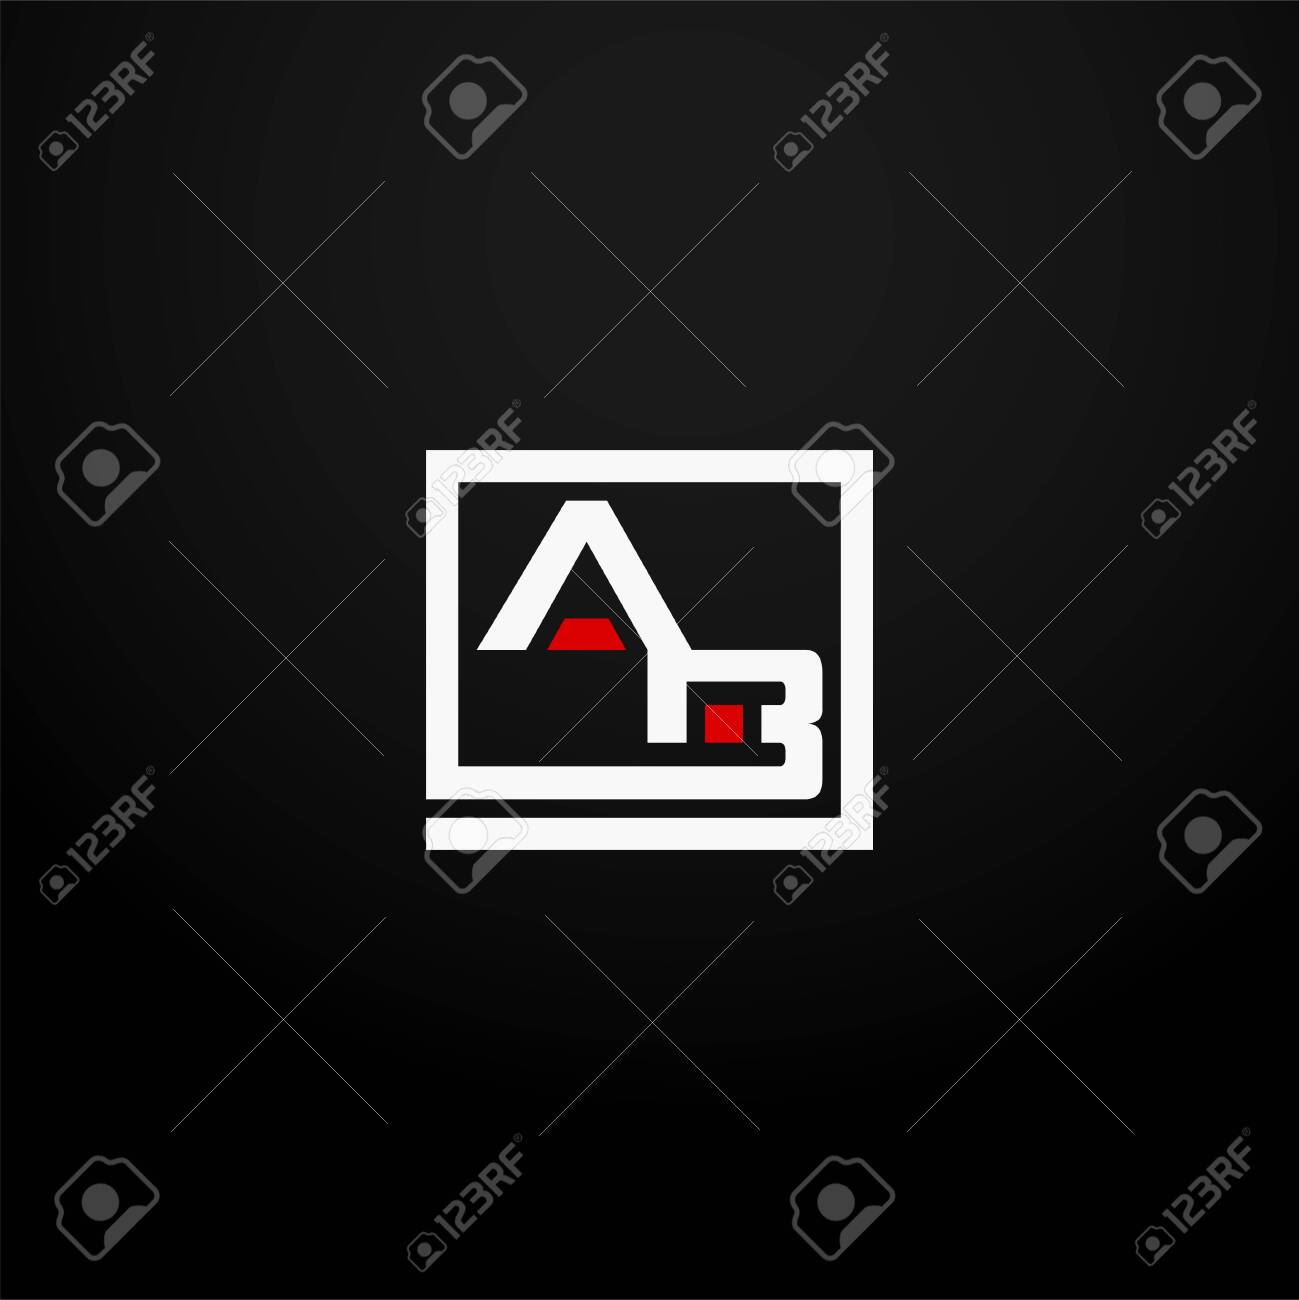 Initial letter AB linked square logo white and red color. Corporate identity design template element. Industry, finance, bank logotype. Square group, technology interaction, network integrate concept. - 145507833